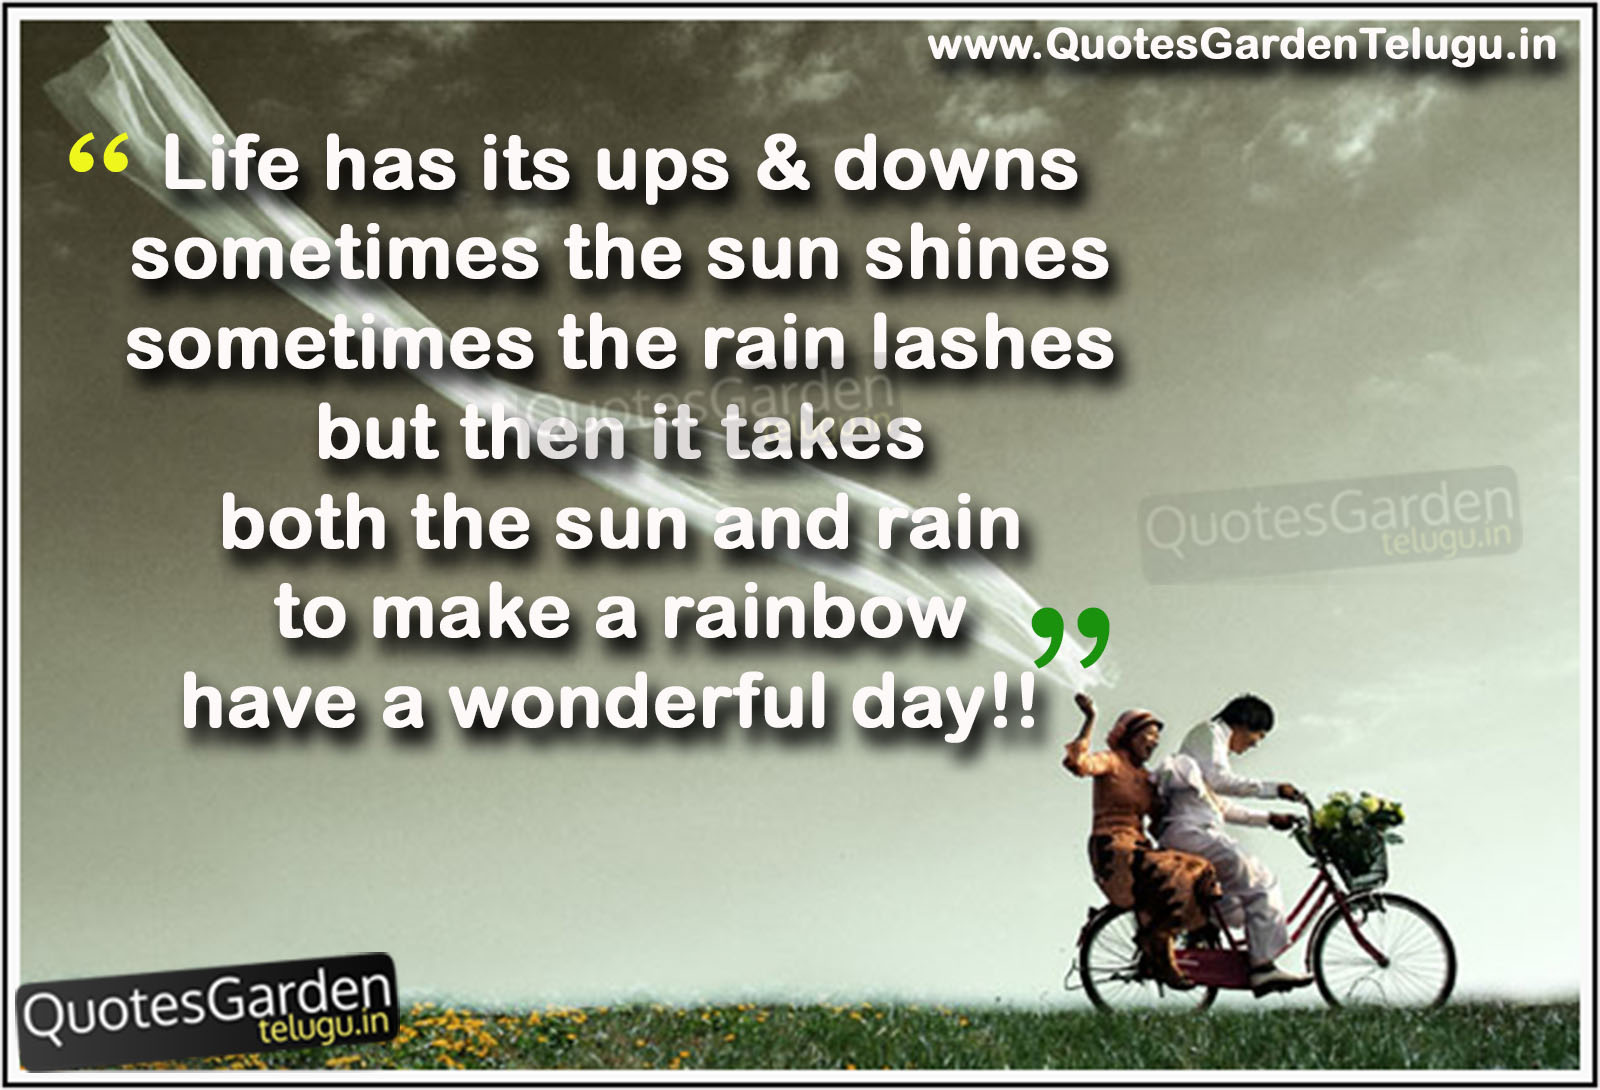 Good morning greetings with nice hd wallpapers quotes garden good morning greetings with nice hd wallpapers kristyandbryce Images